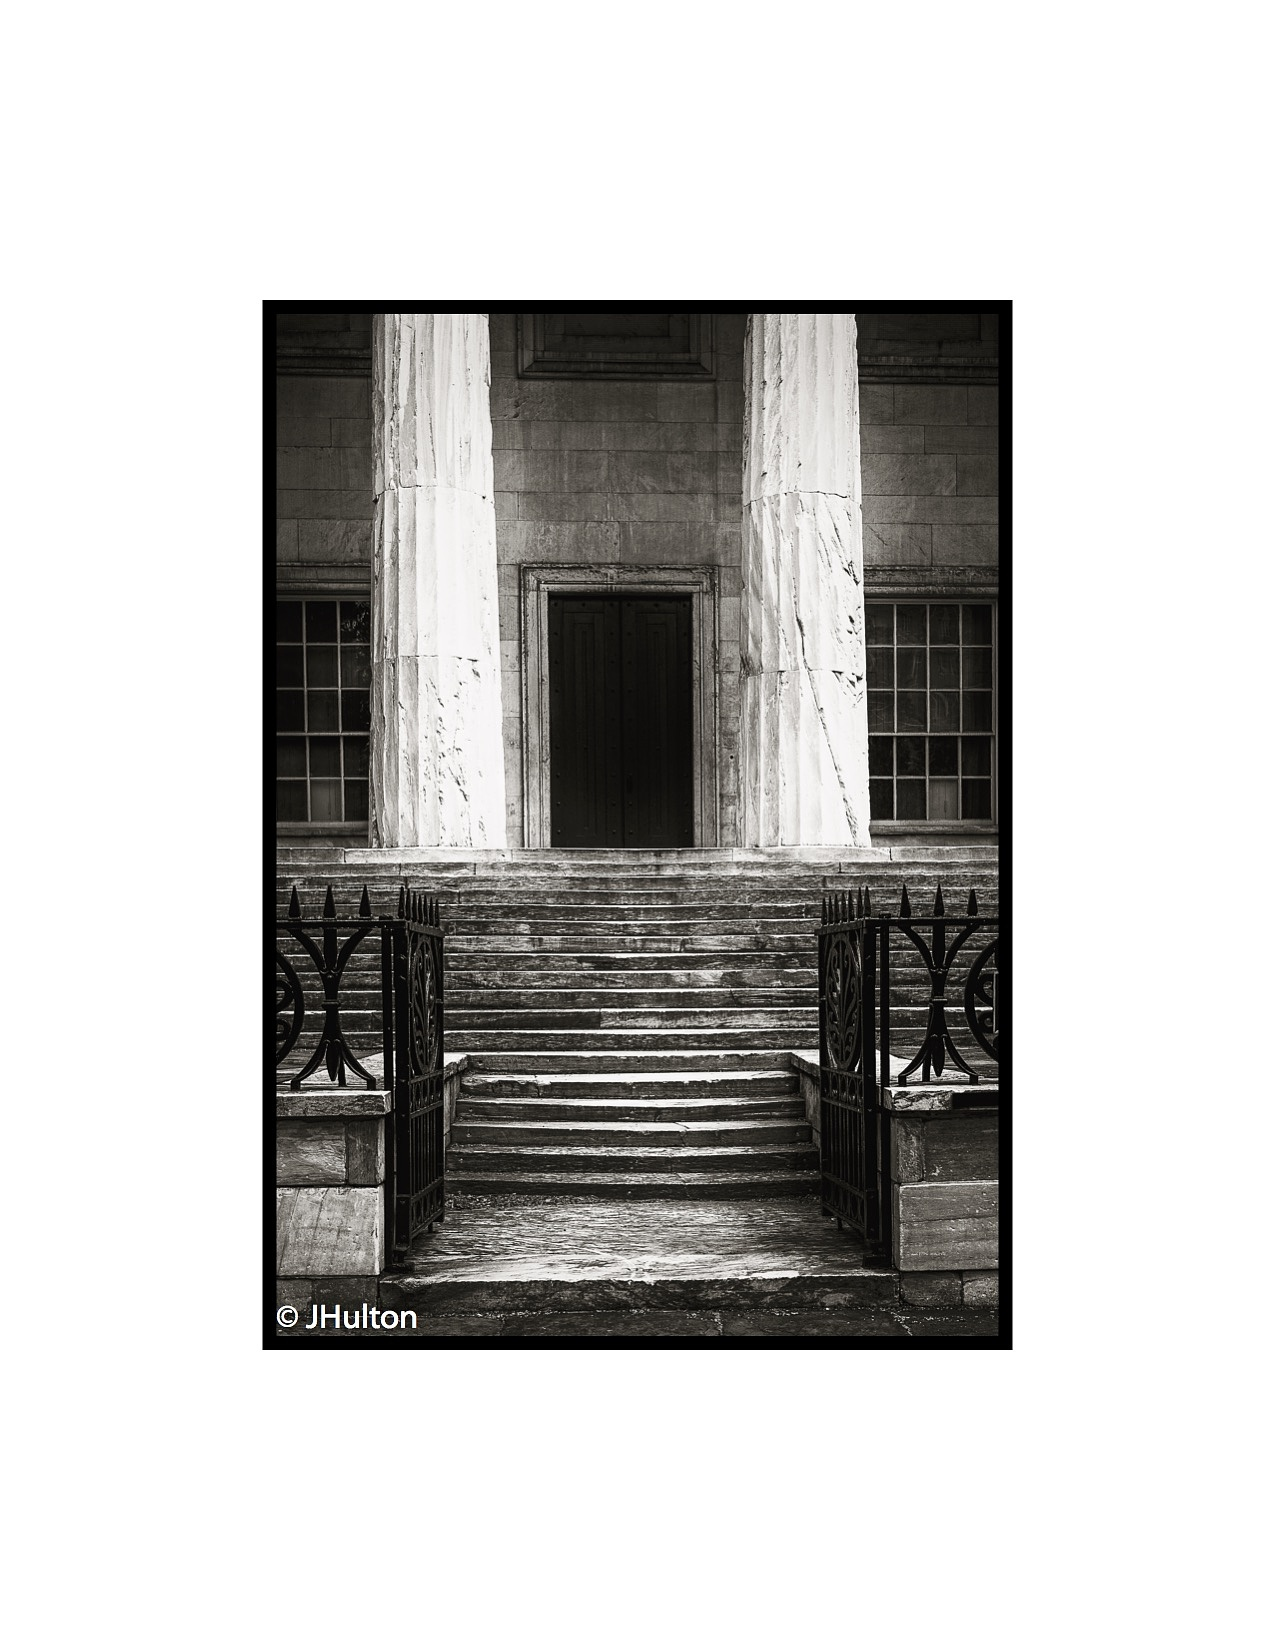 Entrance to history by jhulton